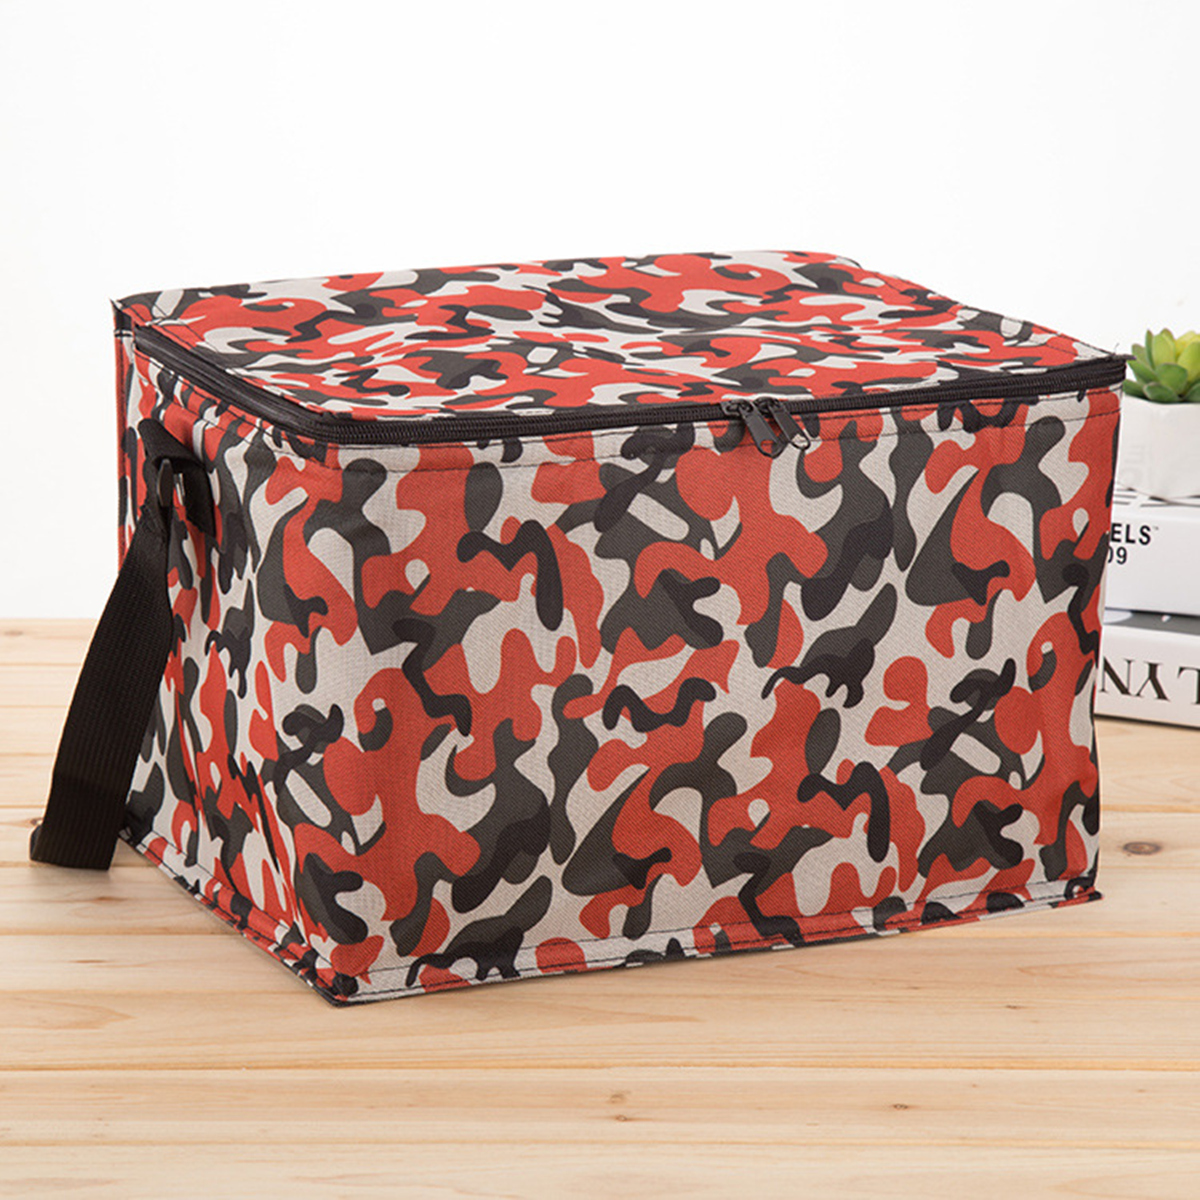 Large Camouflage Thermal Cooler Waterproof Insulated Portable Tote Picnic Lunch Bag